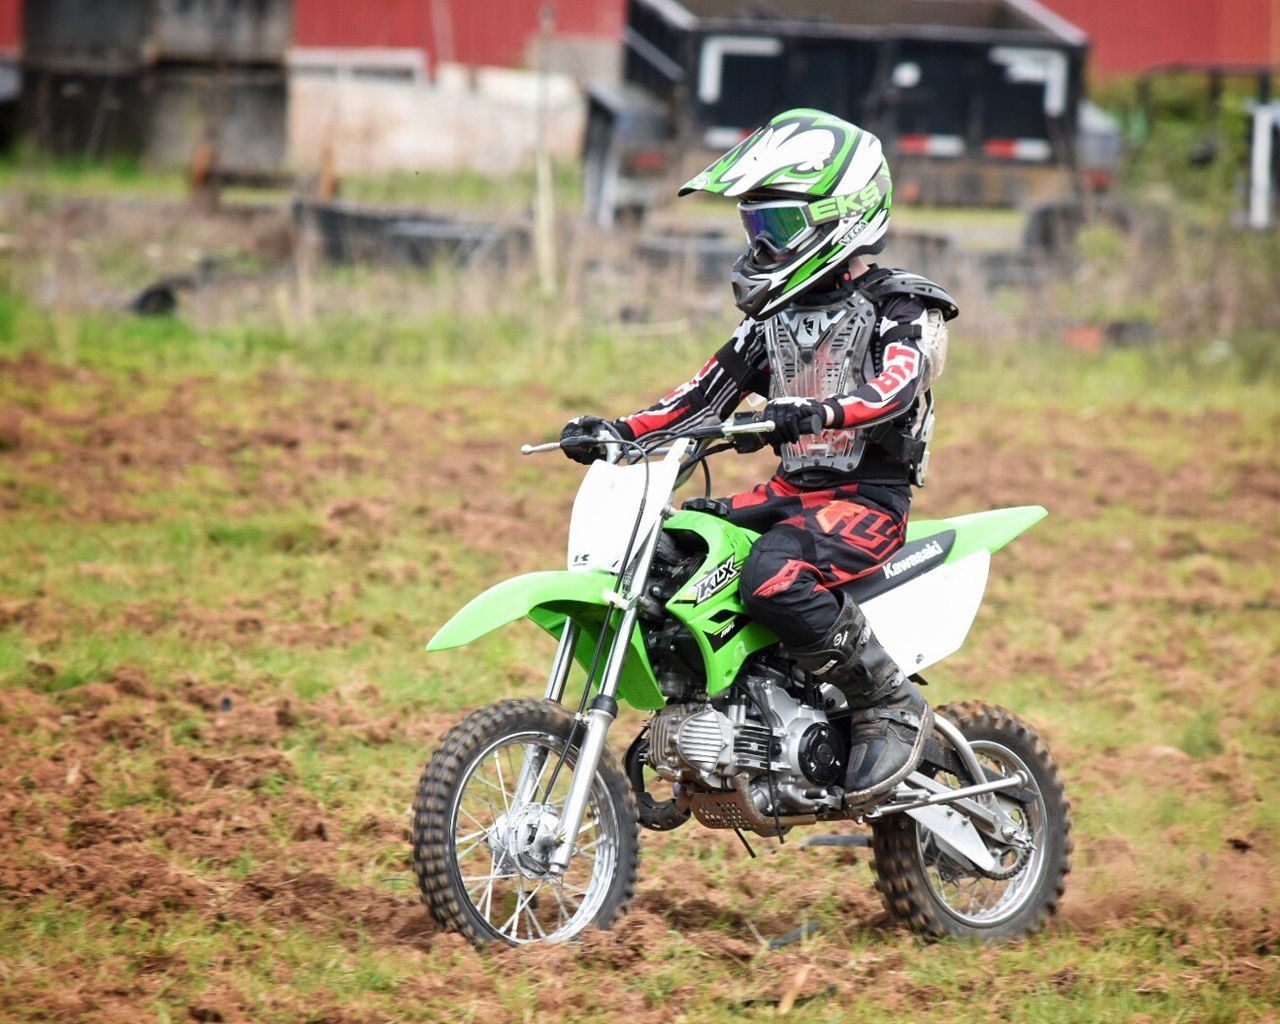 Motorcycle Land Vehicle Mode Of Transport Transportation Crash Helmet Motorcycle Racing Motorsport Riding Motocross Biker Helmet Sports Helmet Stationary Sport One Person Adventure Headwear Day Sports Clothing Outdoors Dirtbike The Great Outdoors - 2017 EyeEm Awards Youth Of Today Childhood Memories Youth Culture